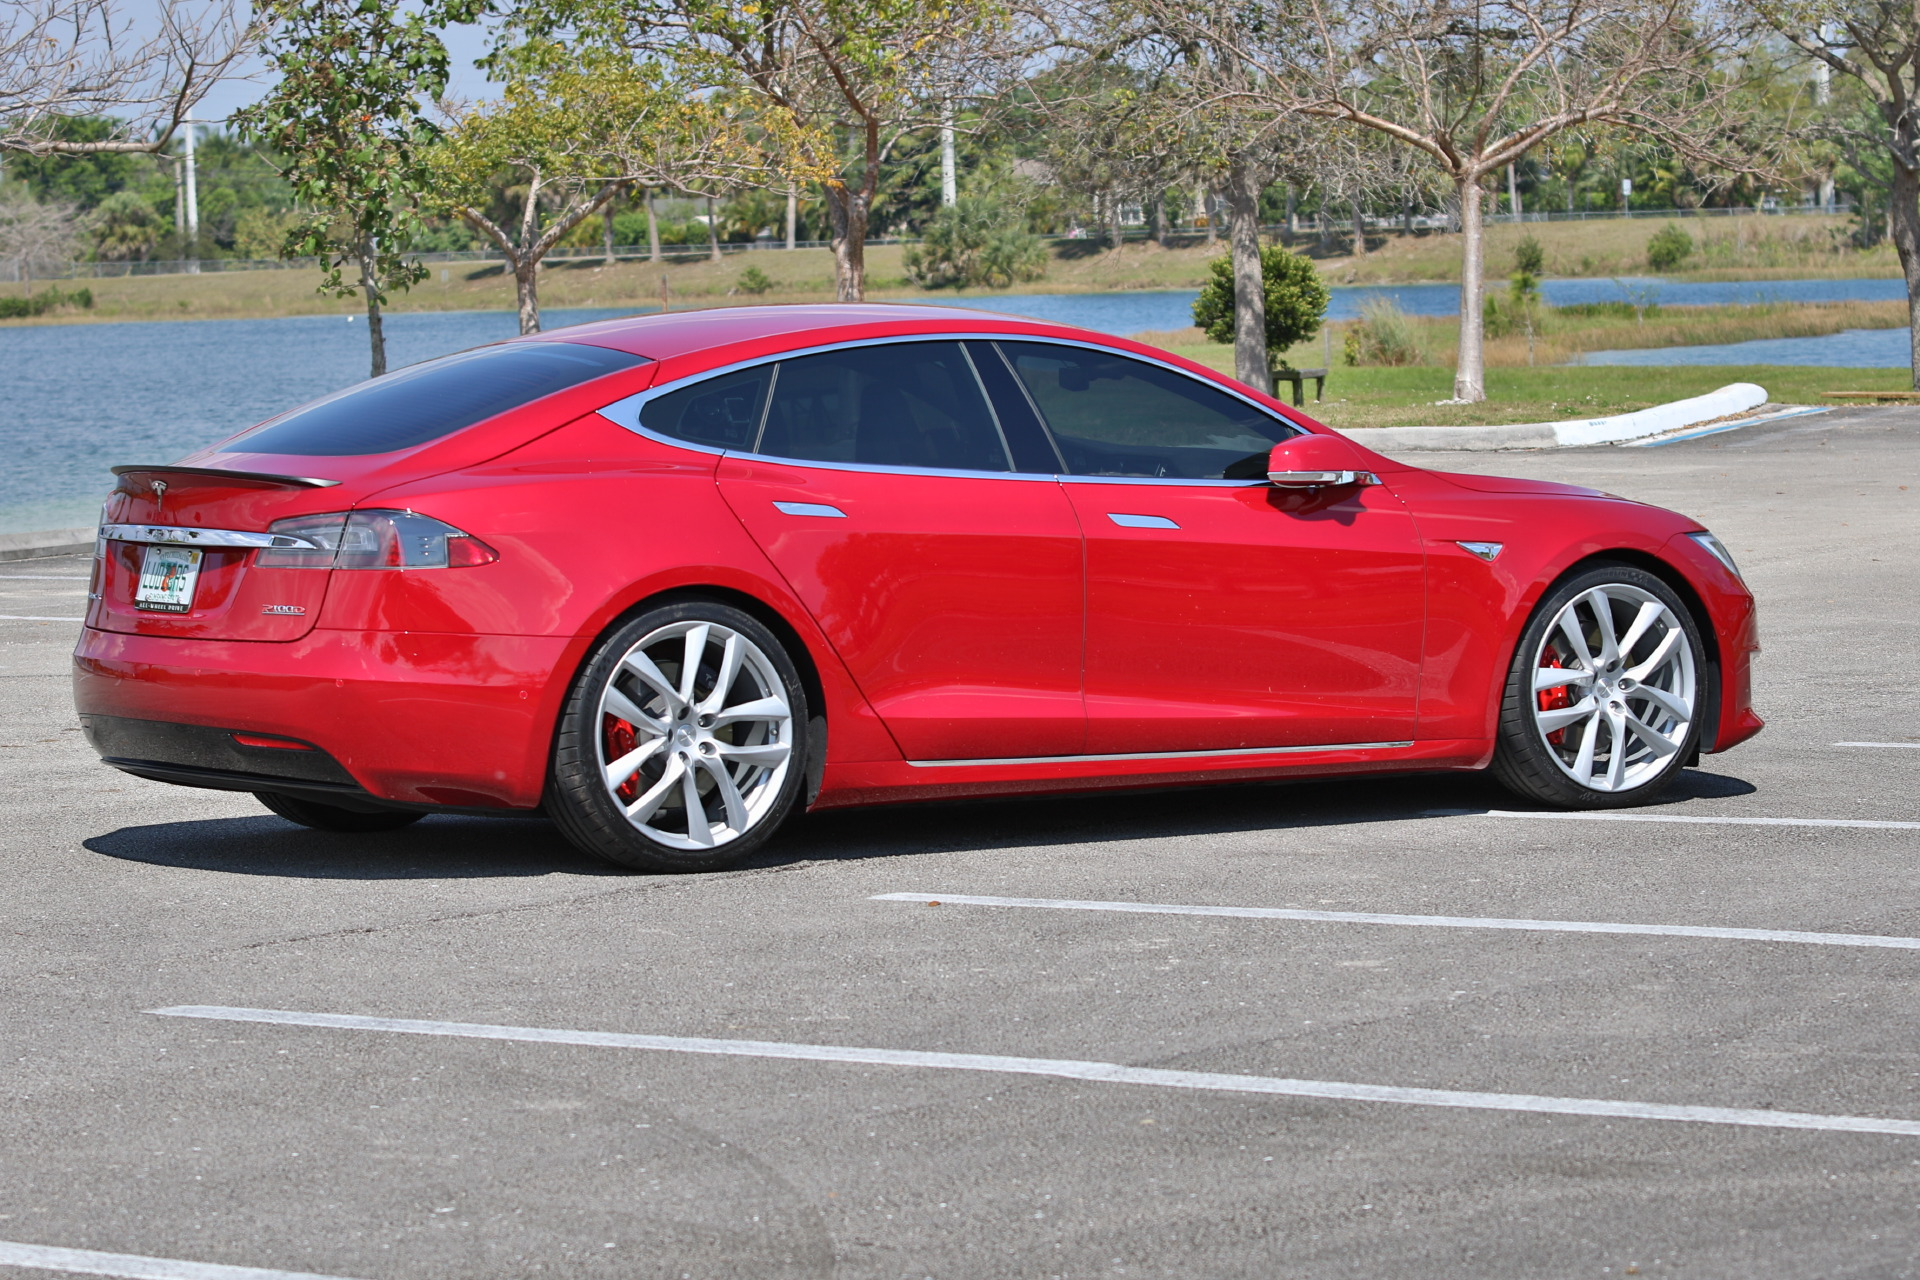 New Oem Tesla Forged Lightweight Arachnid Wheels On The